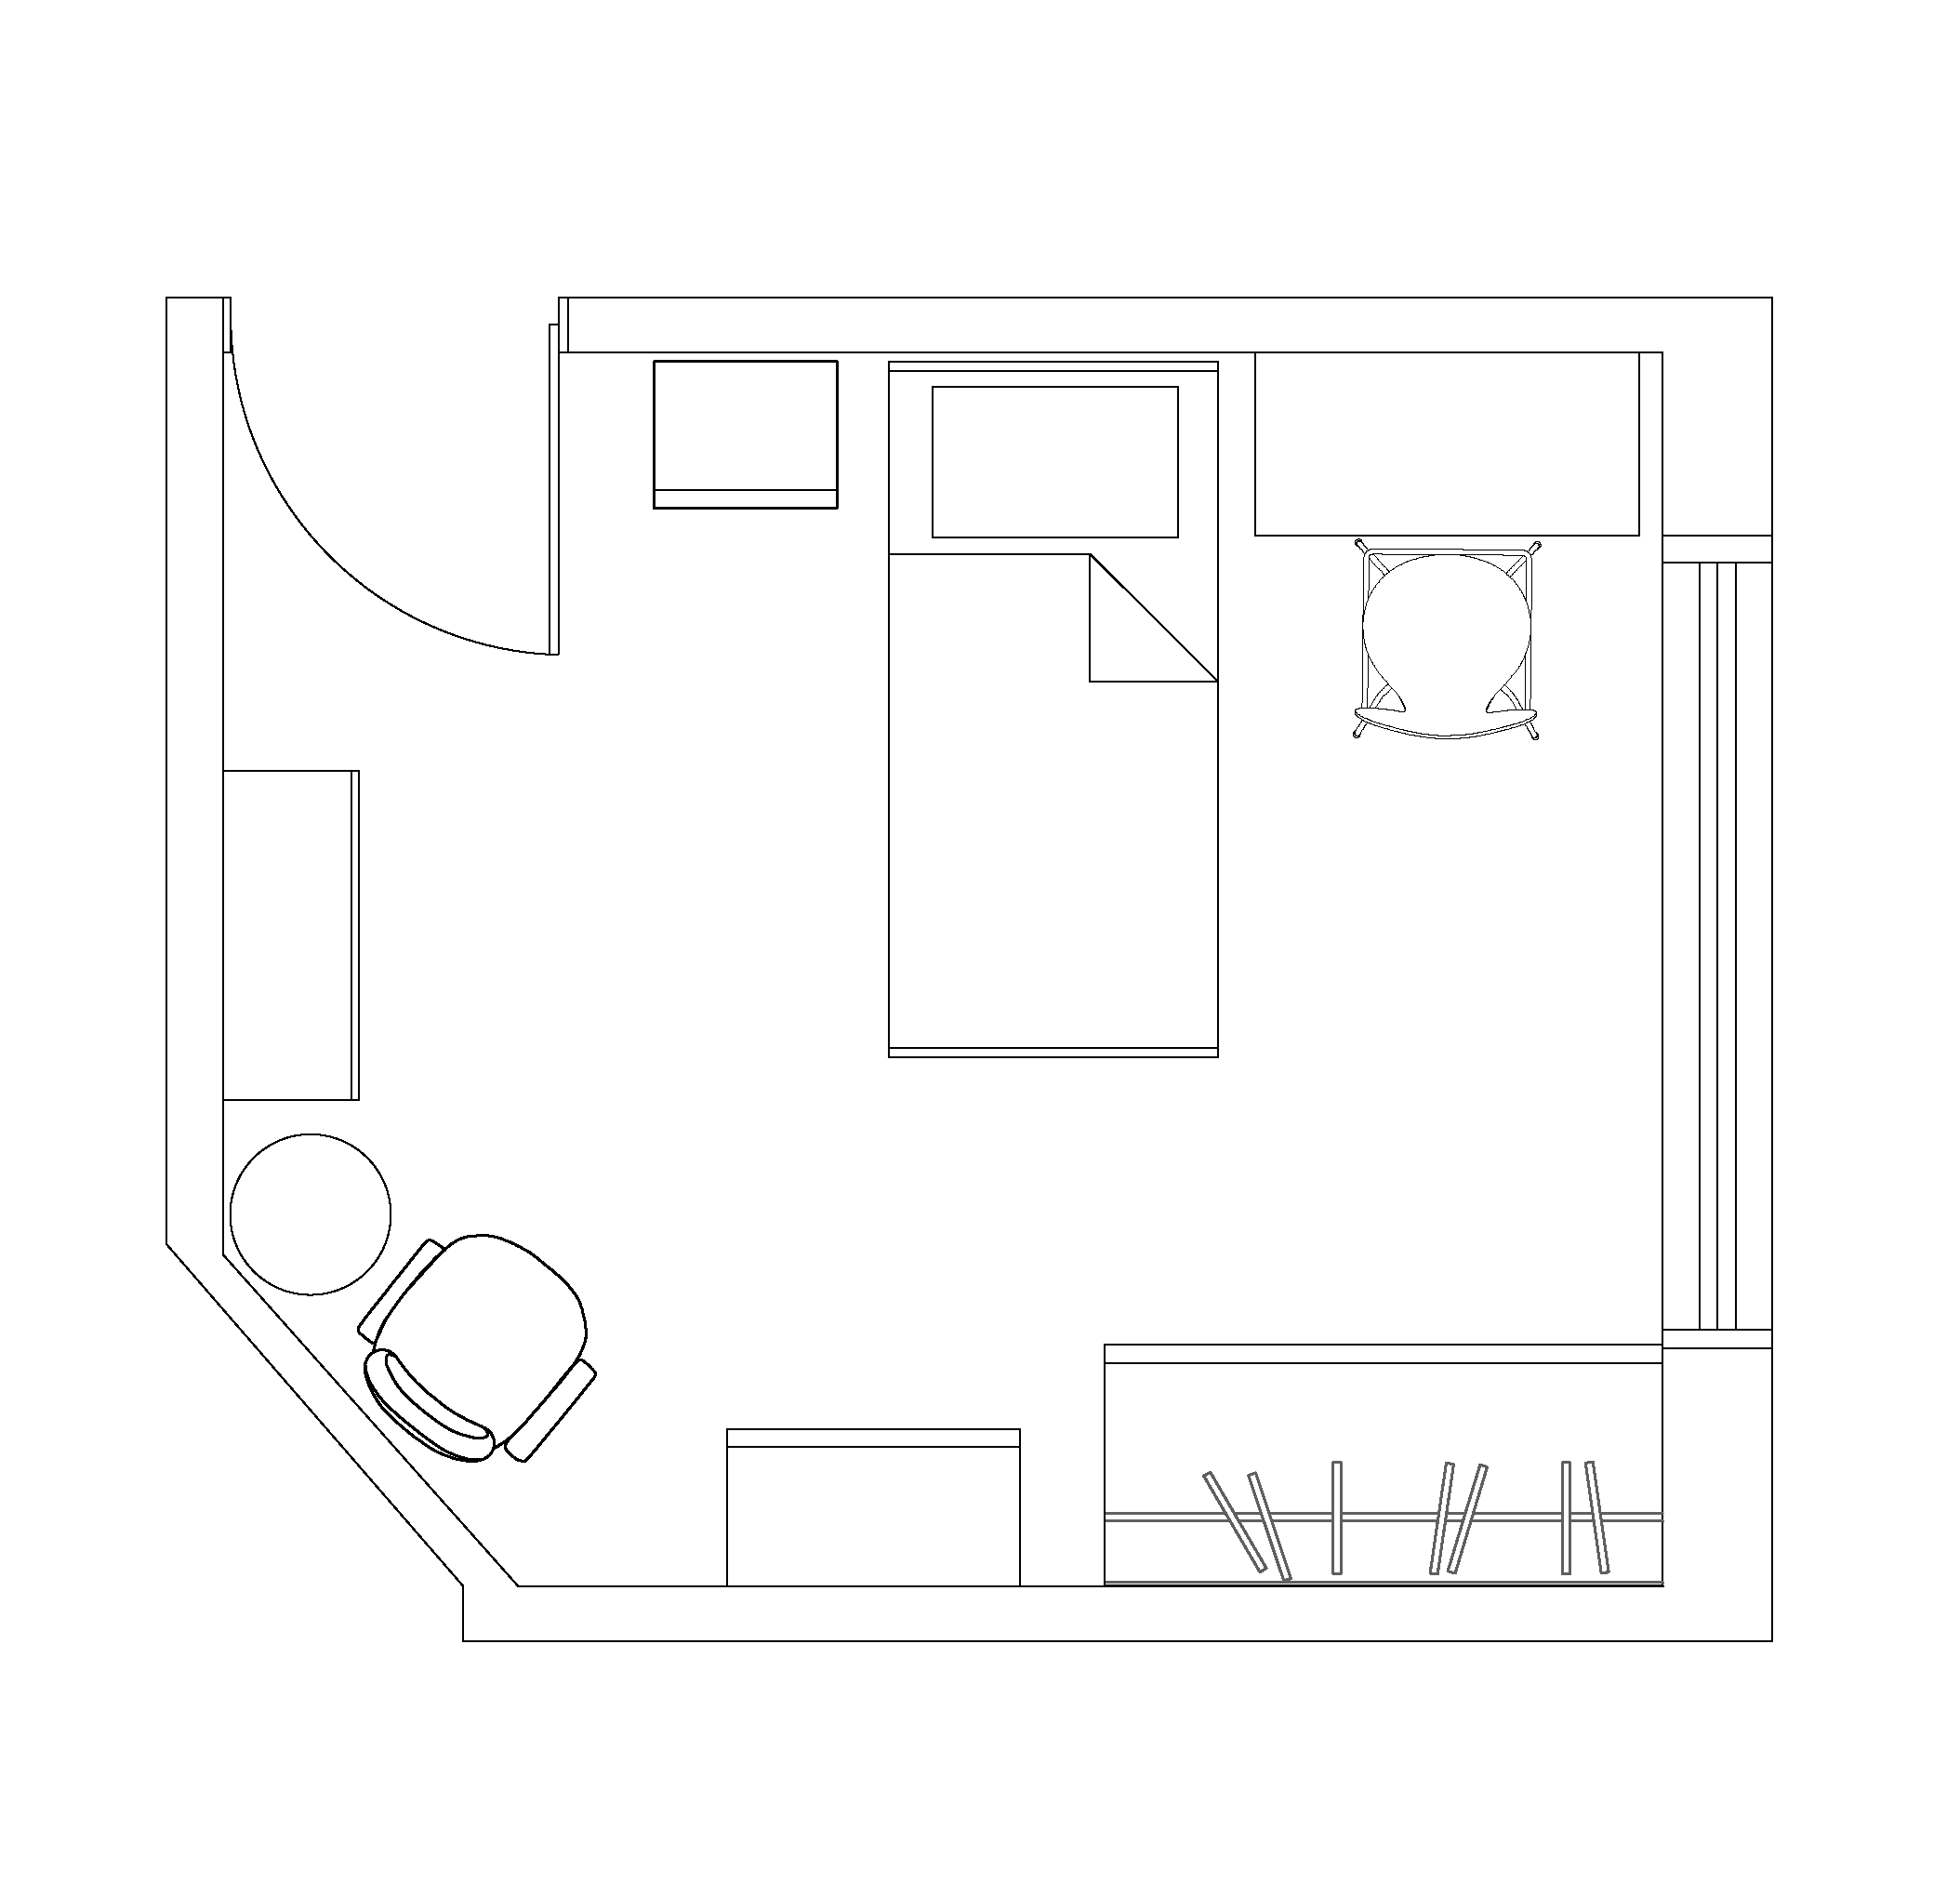 Plan your bedroom layout